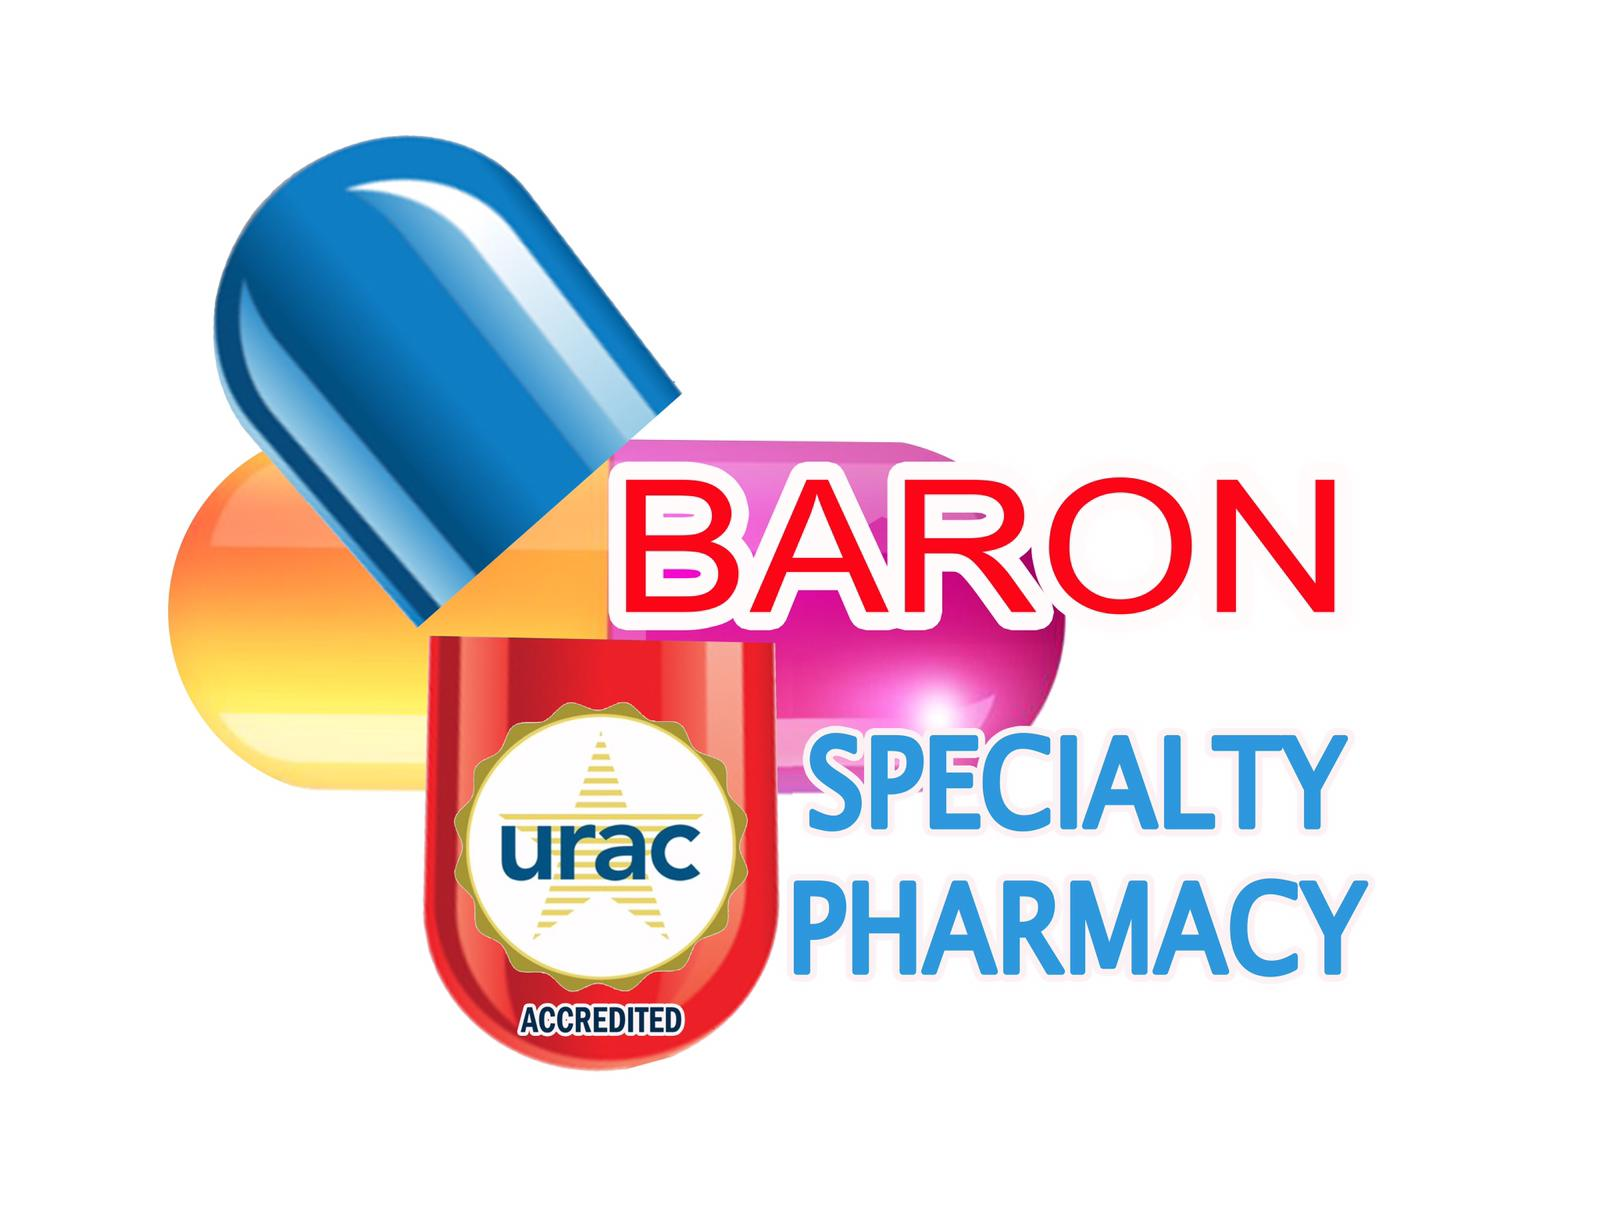 Baron Specialty Pharmacy